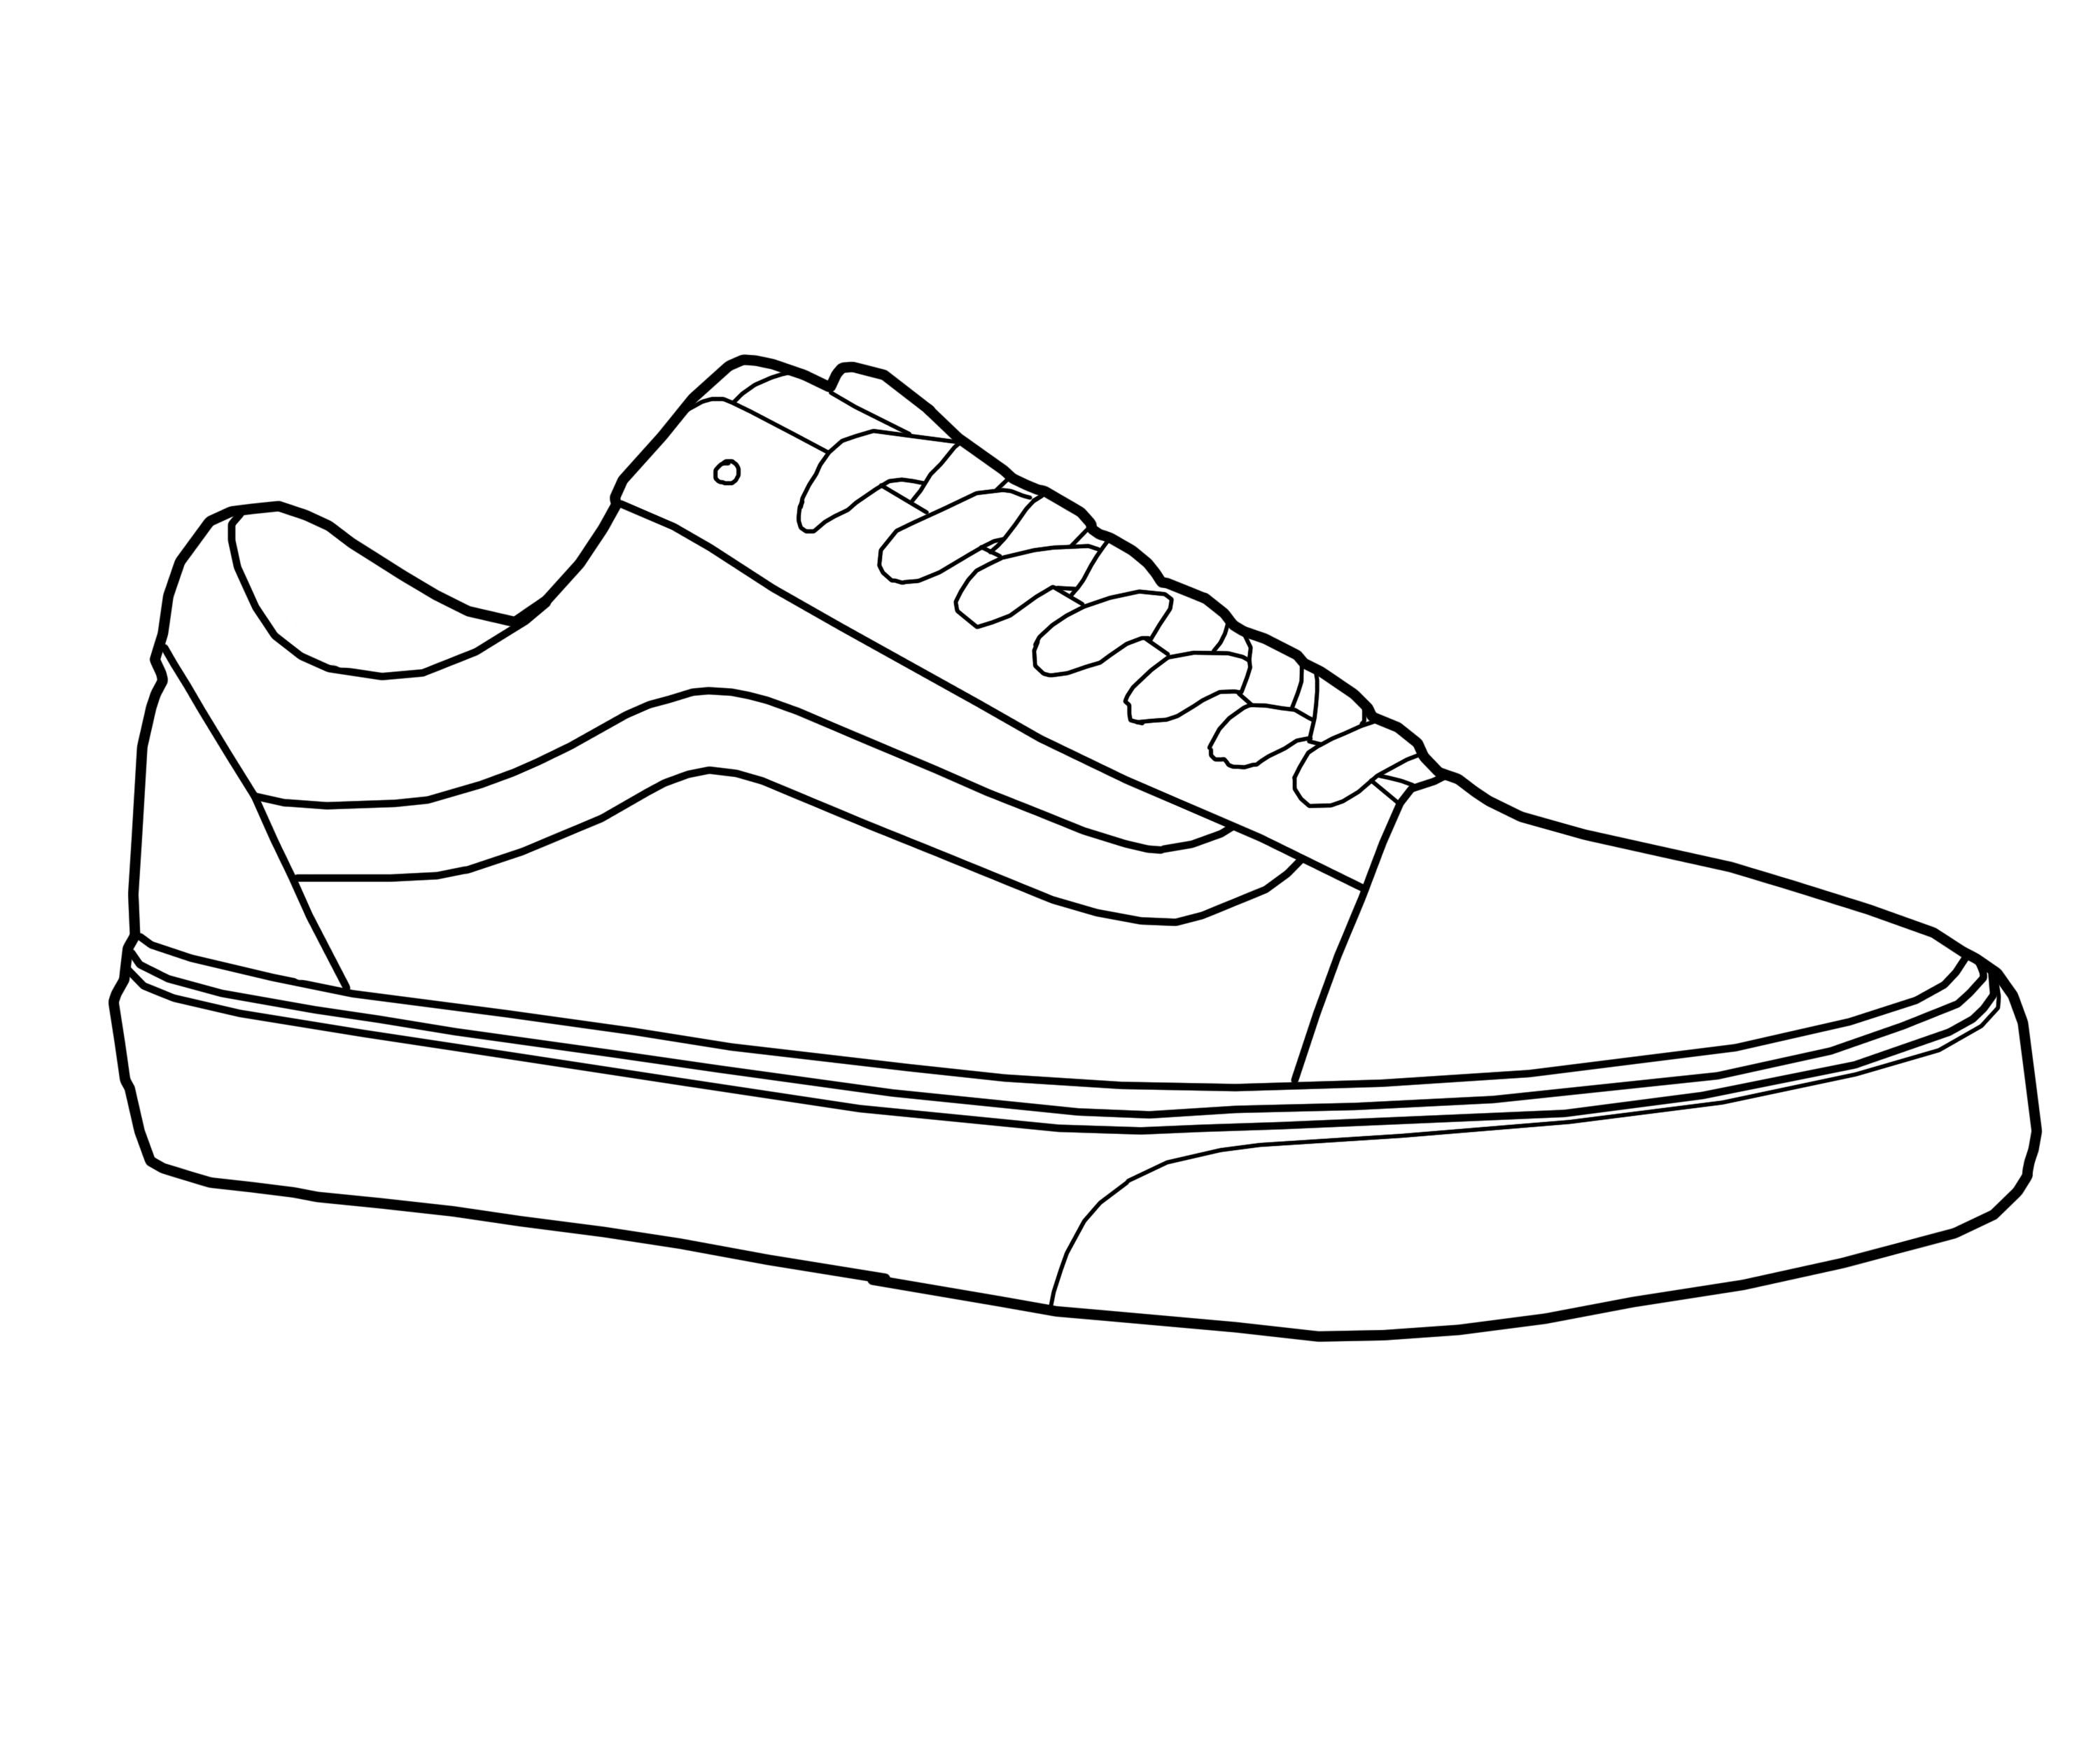 Drawing Smooth Lines Canvas : 的coloring pages 上 威翔 的釘圖 pinterest vans shoes